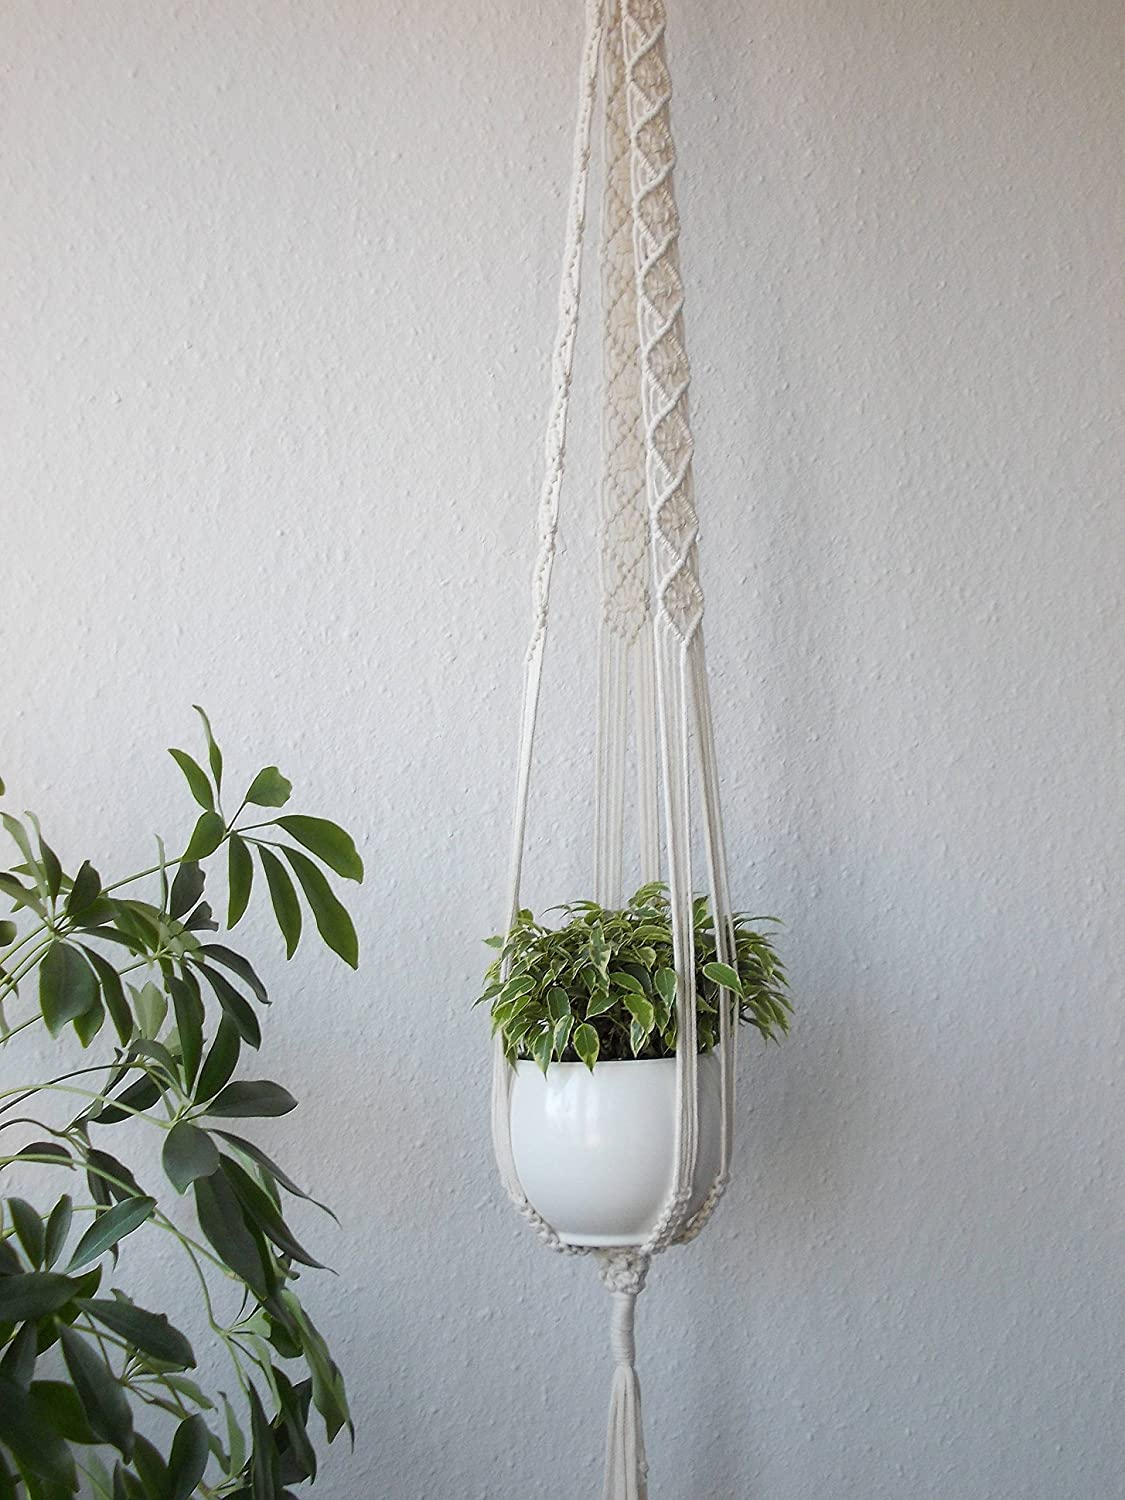 Macrame plant hanger or hanging table